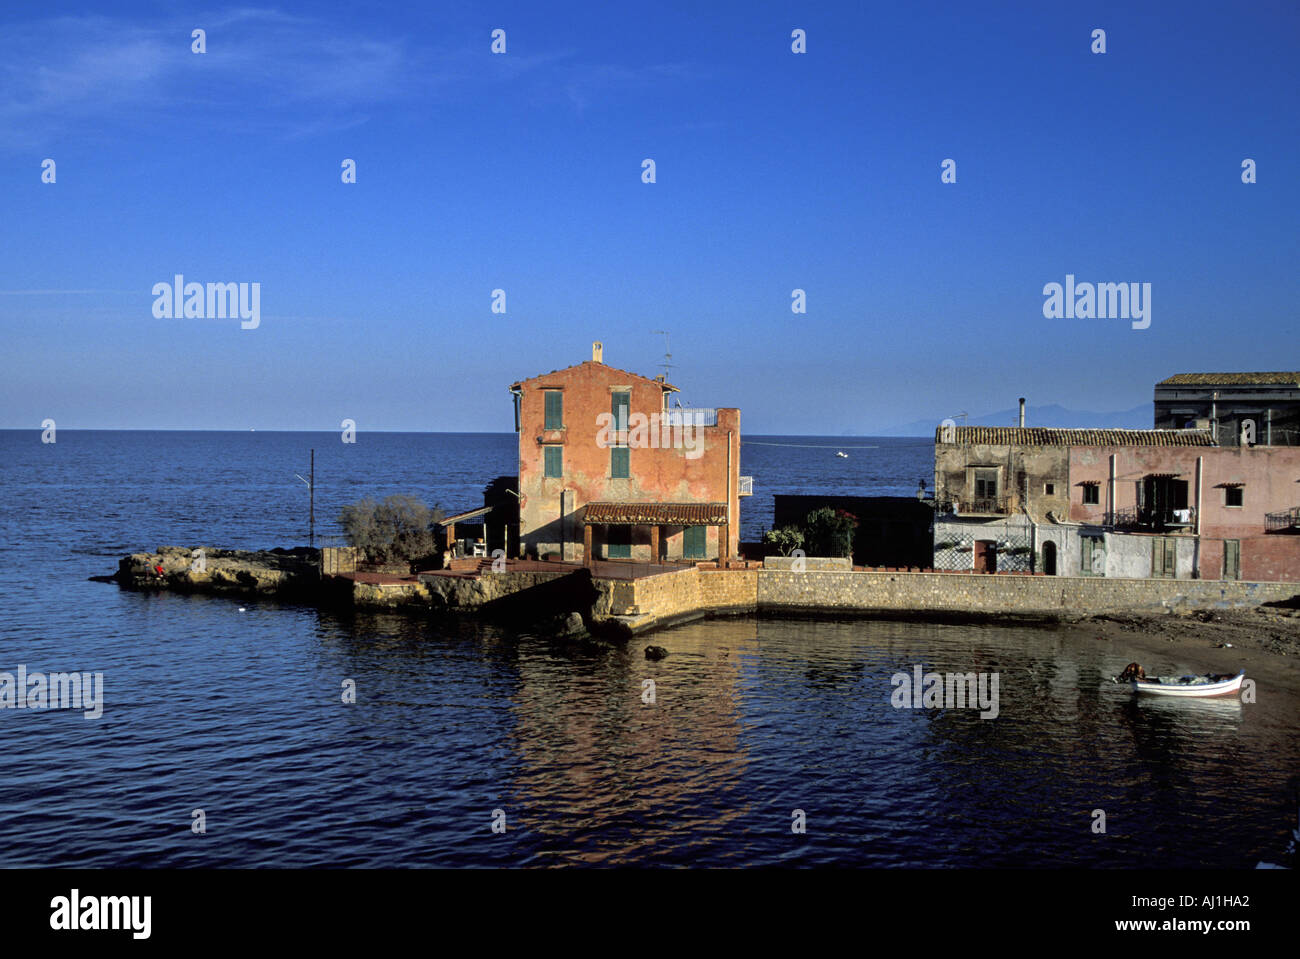 Santa Flavia Italy  city photos gallery : Santa Flavia Palermo Sicily Italy Stock Photo, Royalty Free Image ...